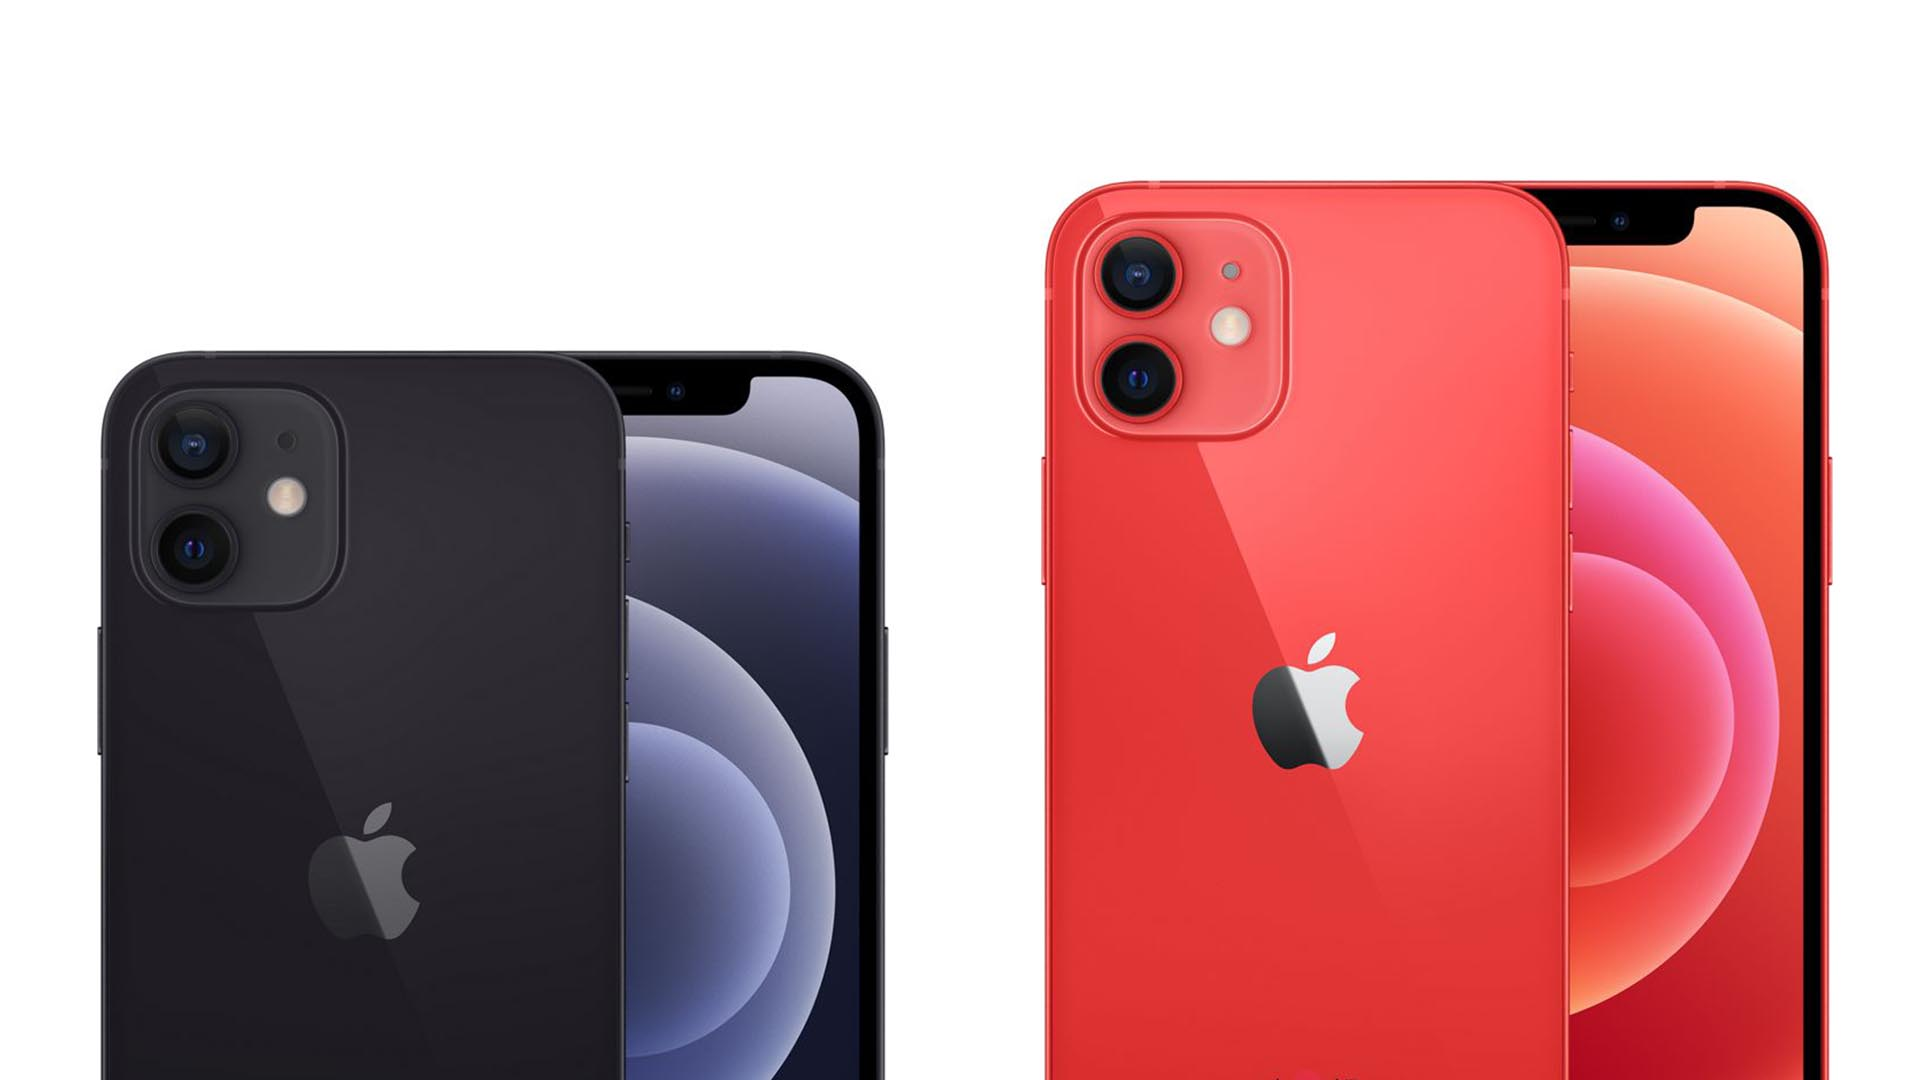 Iphone 12 Iphone 12 Mini Are Official Both Come With A14 Bionic Chipset Super Retina Xdr Display Stronger Ceramic Shield First 7p Lens More